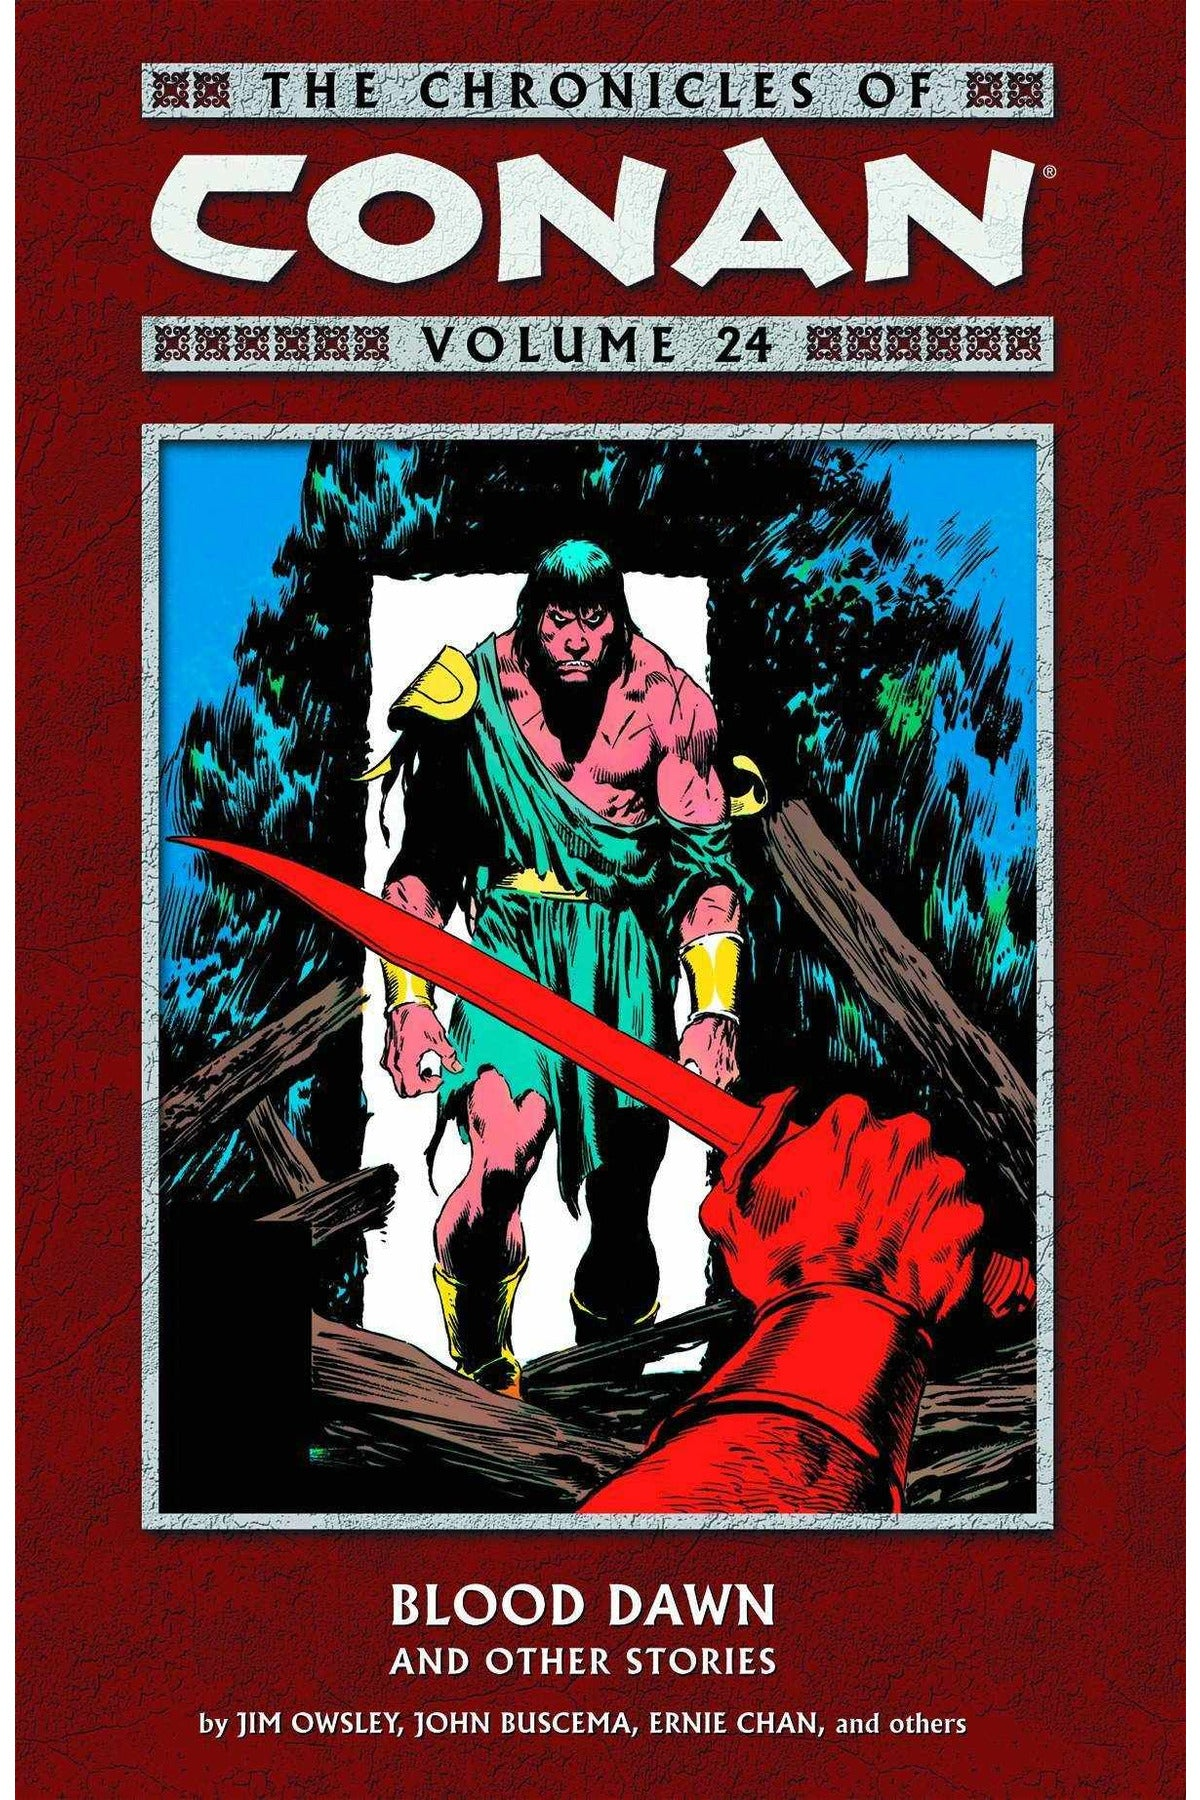 chronicles-of-conan-vol-24-blood-dawn-and-other-stories-diamond-9781616551070-thegamersden.com